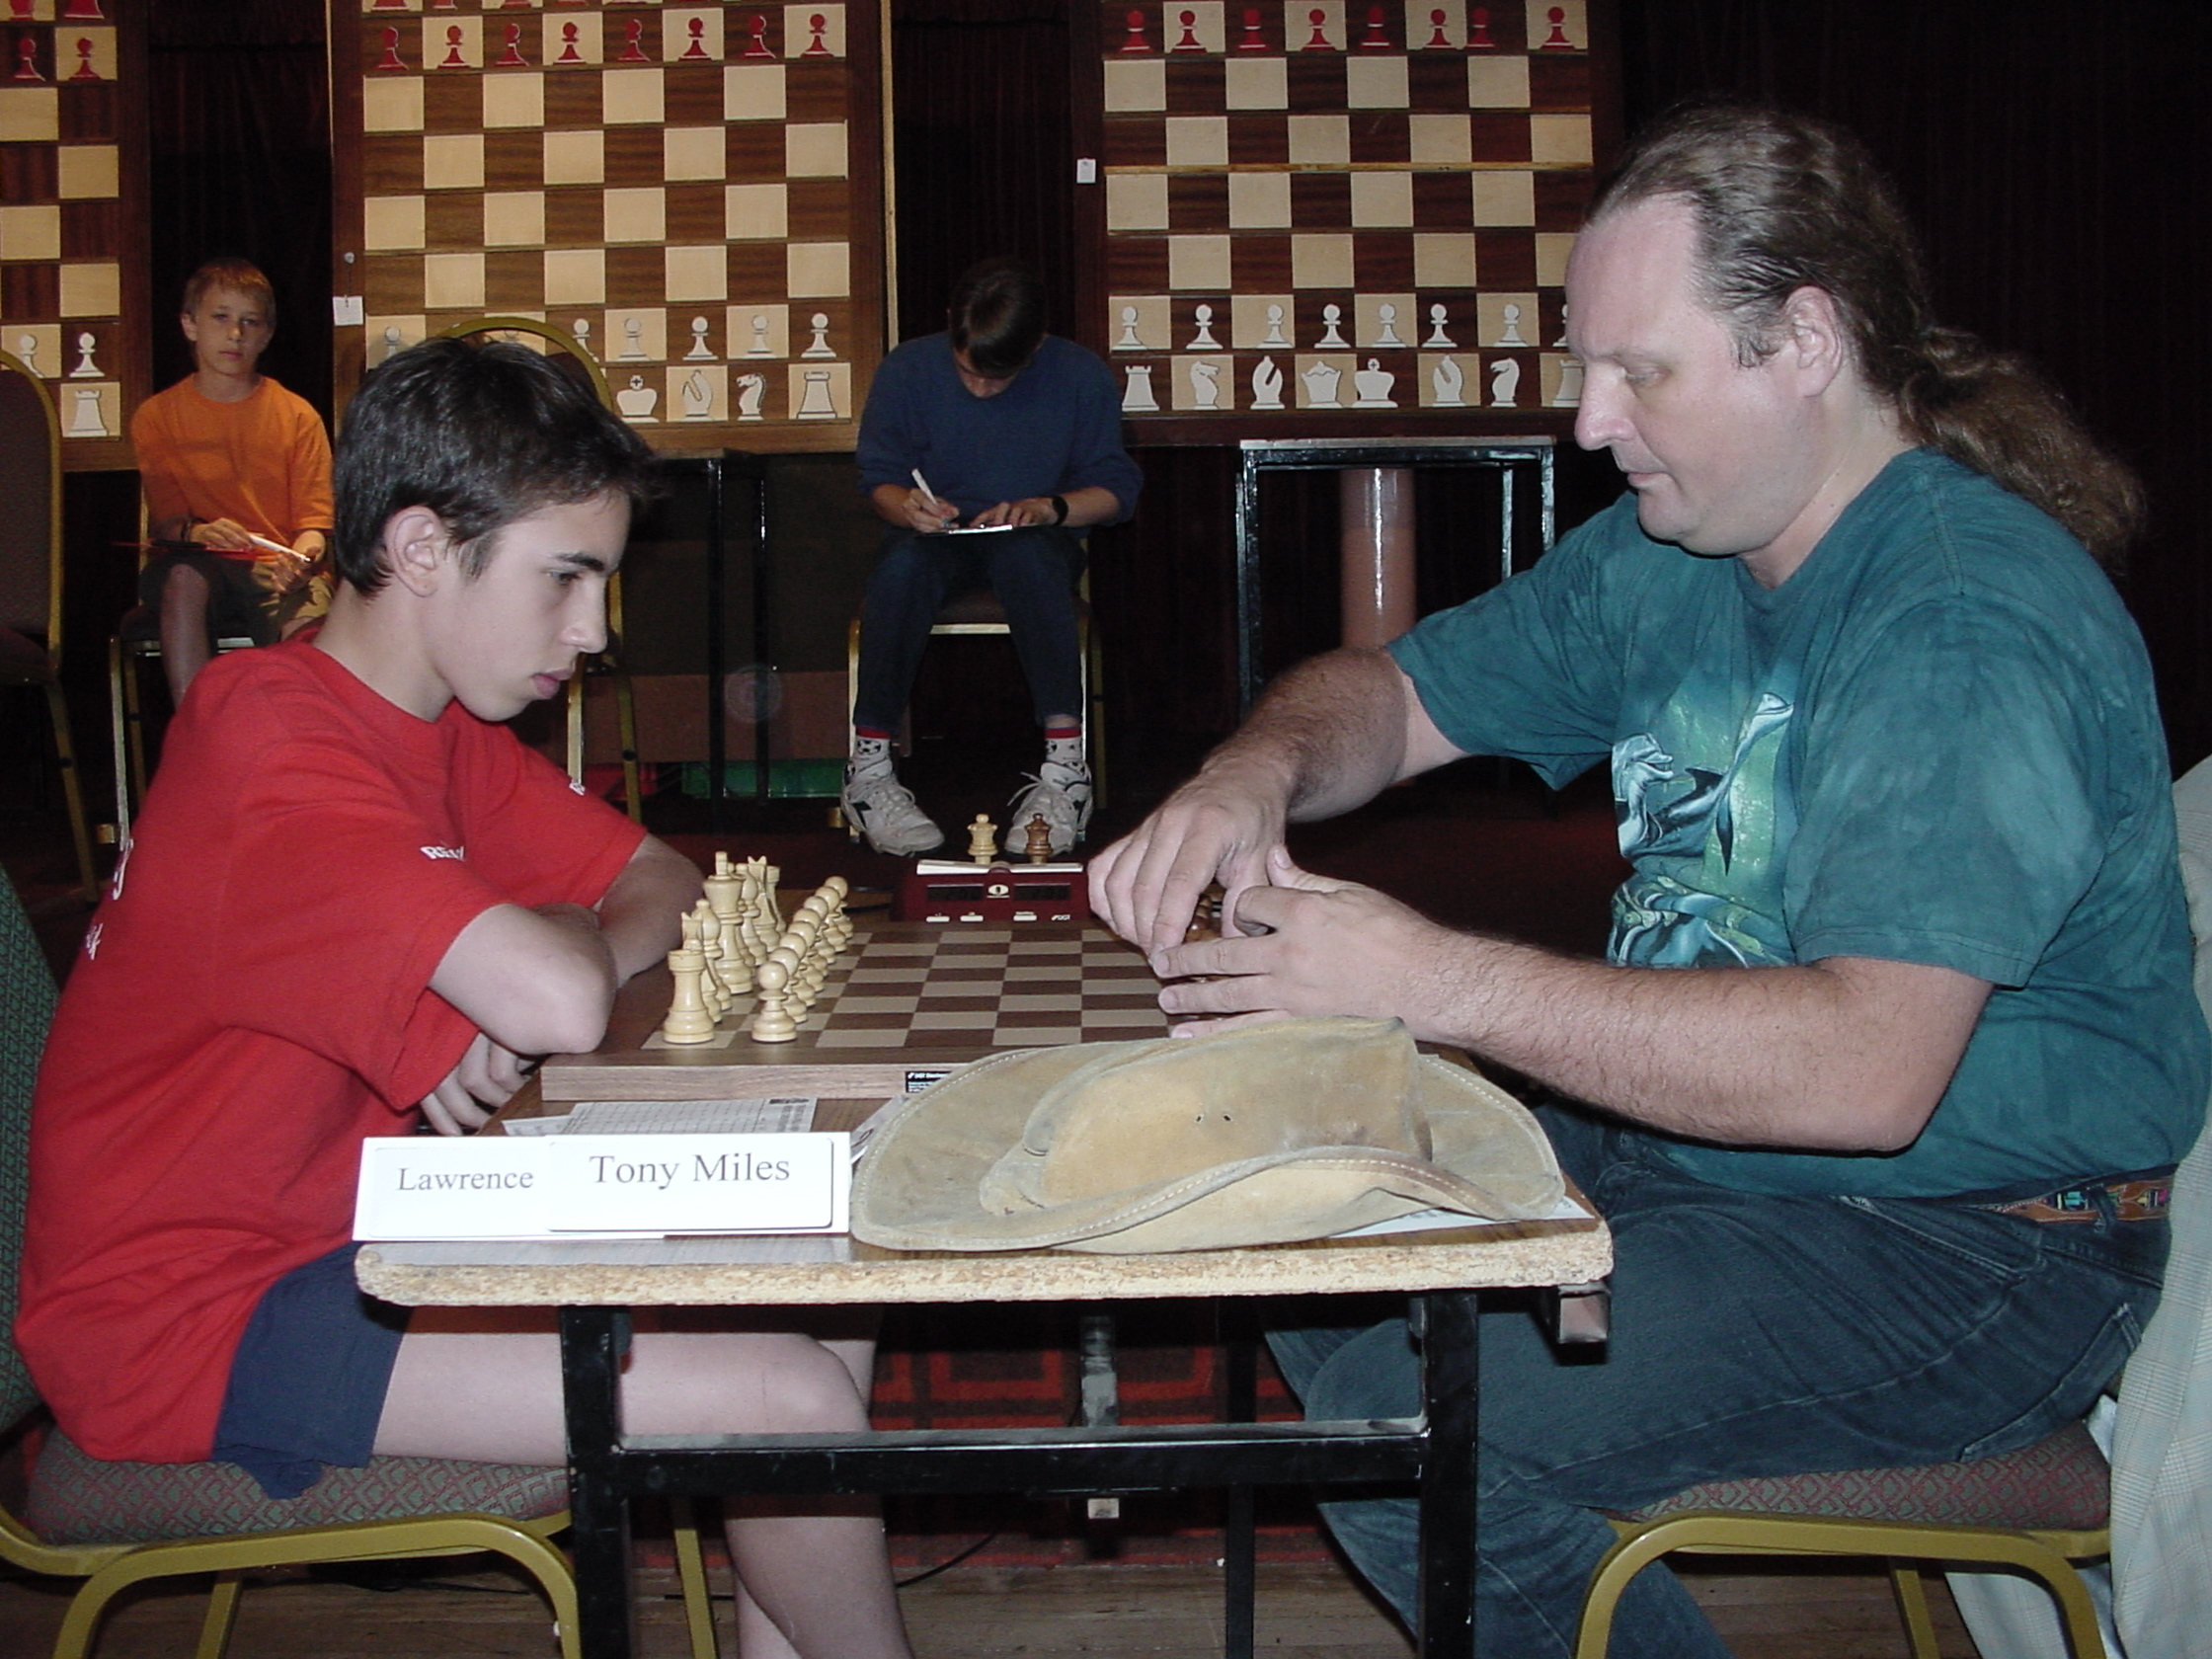 Lawrence Trent plays Tony Miles in 2001 at the British Championships in Scarborough